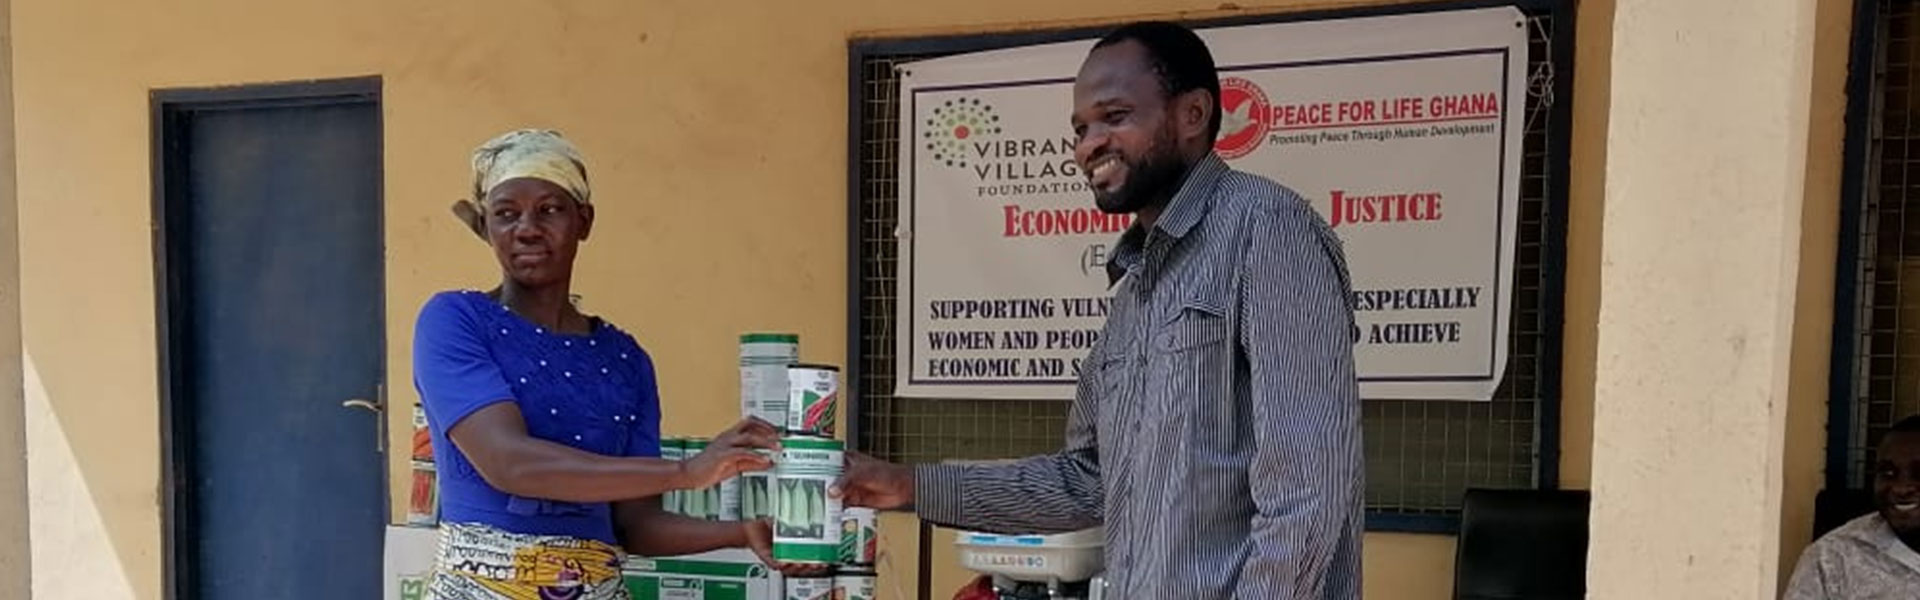 Vegetable farmers from Banawa and Zangum received free seeds and water pumping machines  from peace for life Ghana.the support forms part of the enterprise gardening component of our  Economic  and social justice program with funding from Vibrant village foundation.